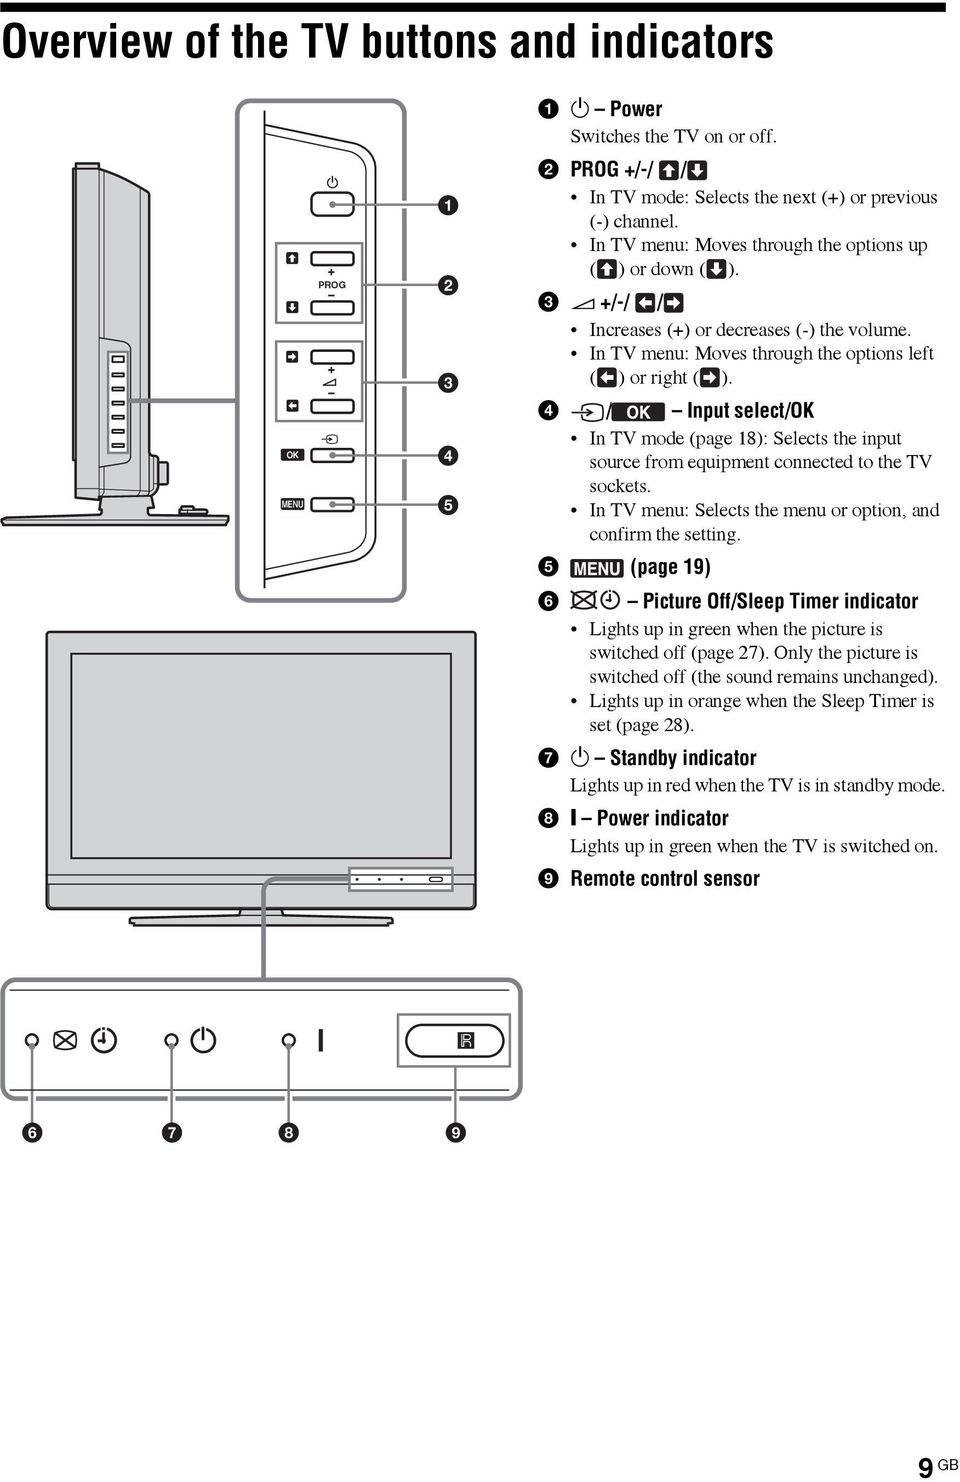 4 / Input select/ok In TV mode (page 18): Selects the input source from equipment connected to the TV sockets. In TV menu: Selects the menu or option, and confirm the setting.